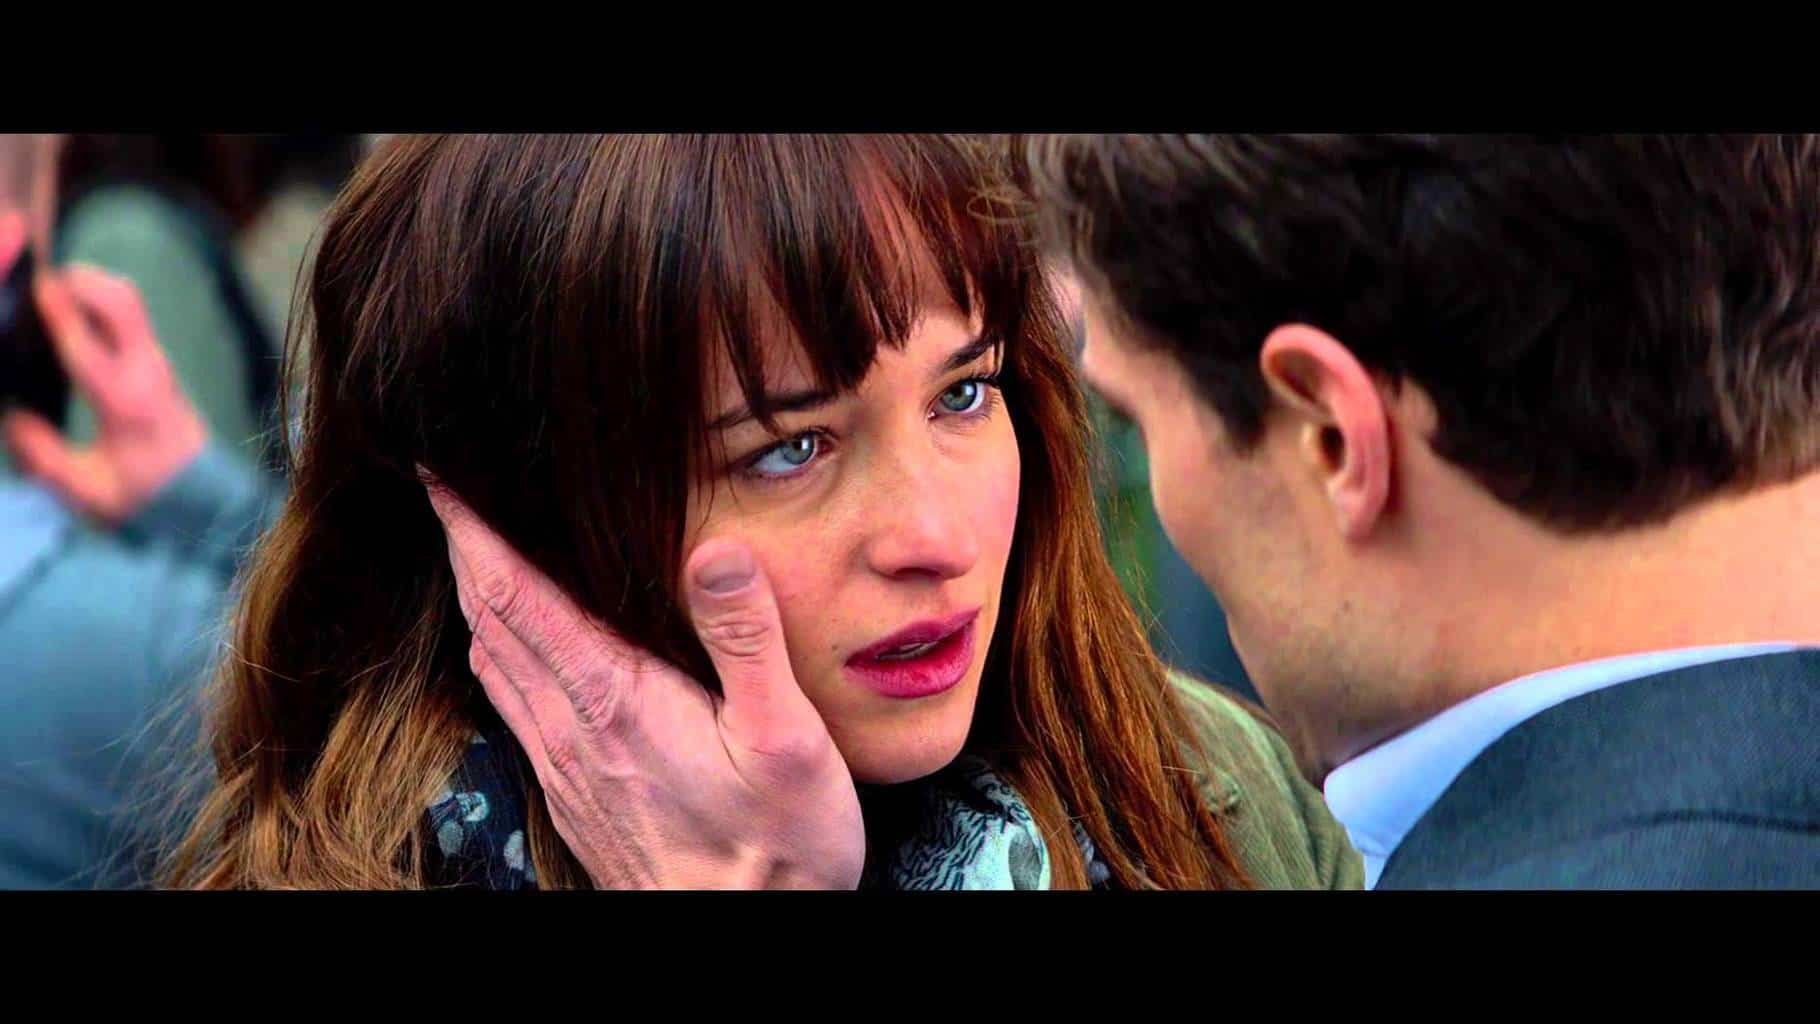 film reviews | movies | features | BRWC Fifty Shades Of Grey: The BRWC Review